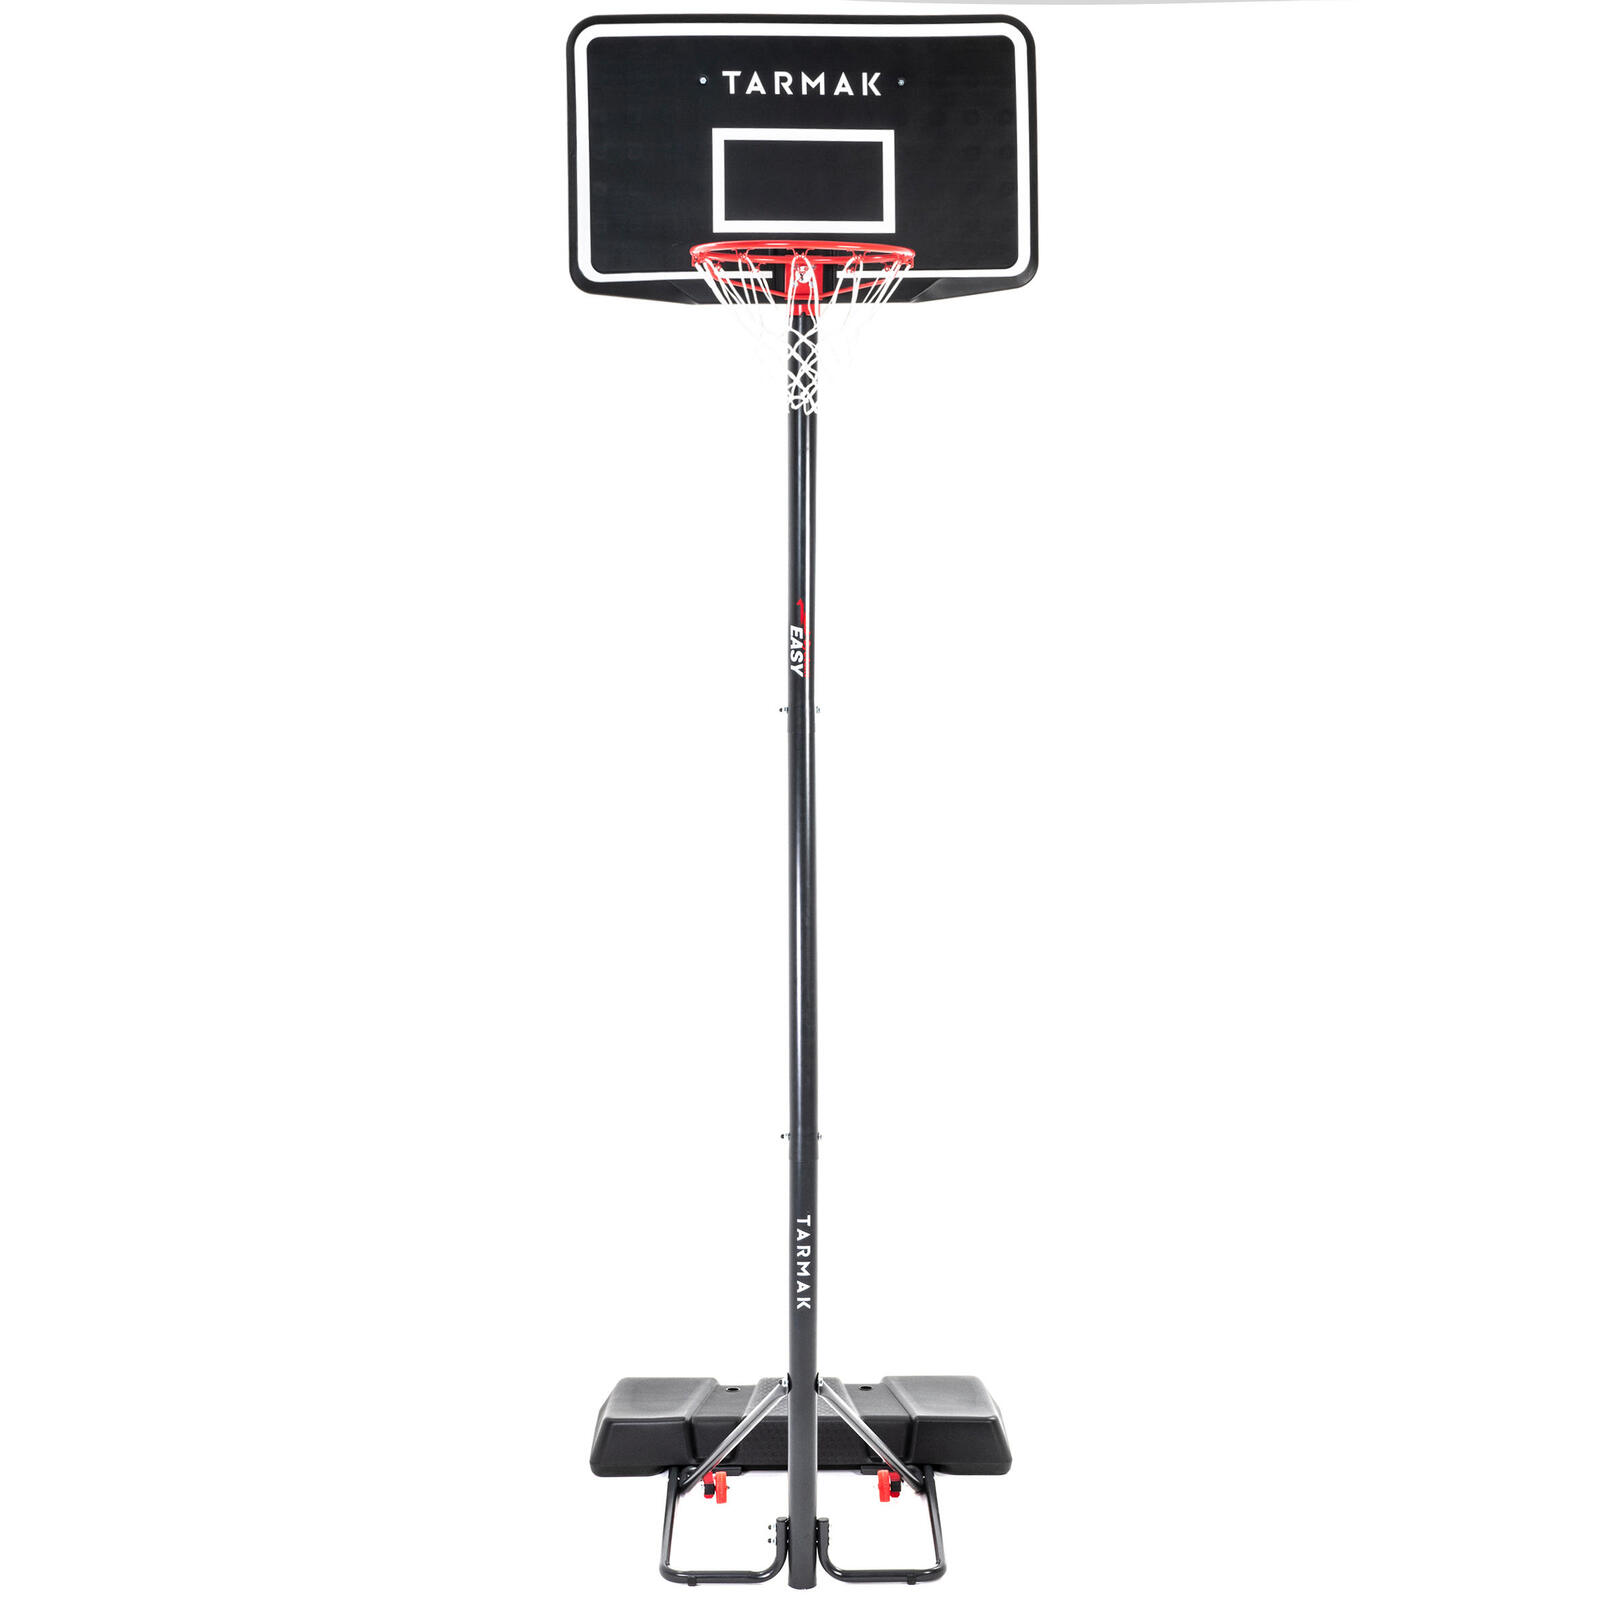 Basketball hoop stand black adjusts from 2.2m to 3.05m tool-free adjustment